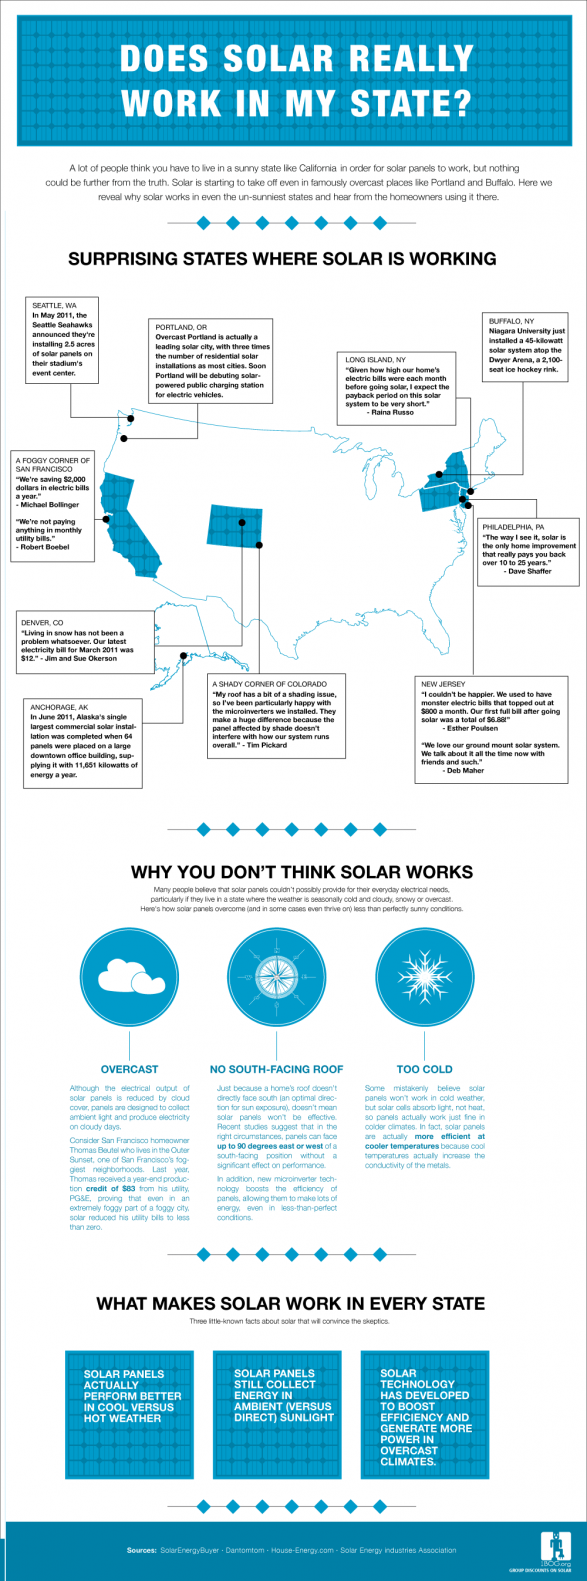 Does solar really work in my state? (Infographic)